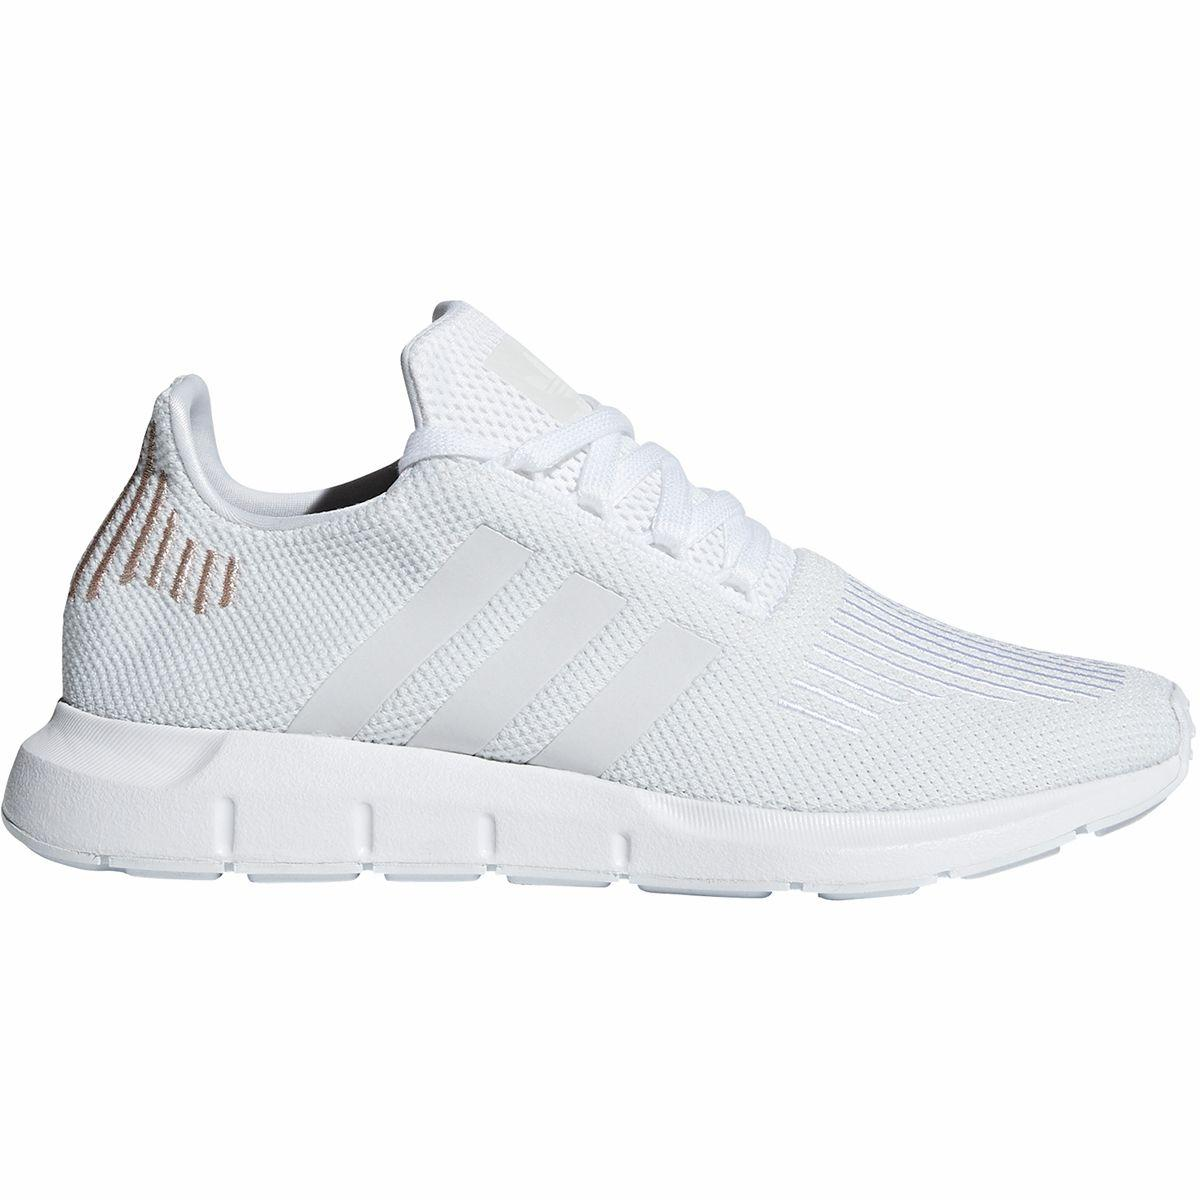 Adidas Synthetic Swift Run Sneaker In White Crystal White White White Save 35 Lyst